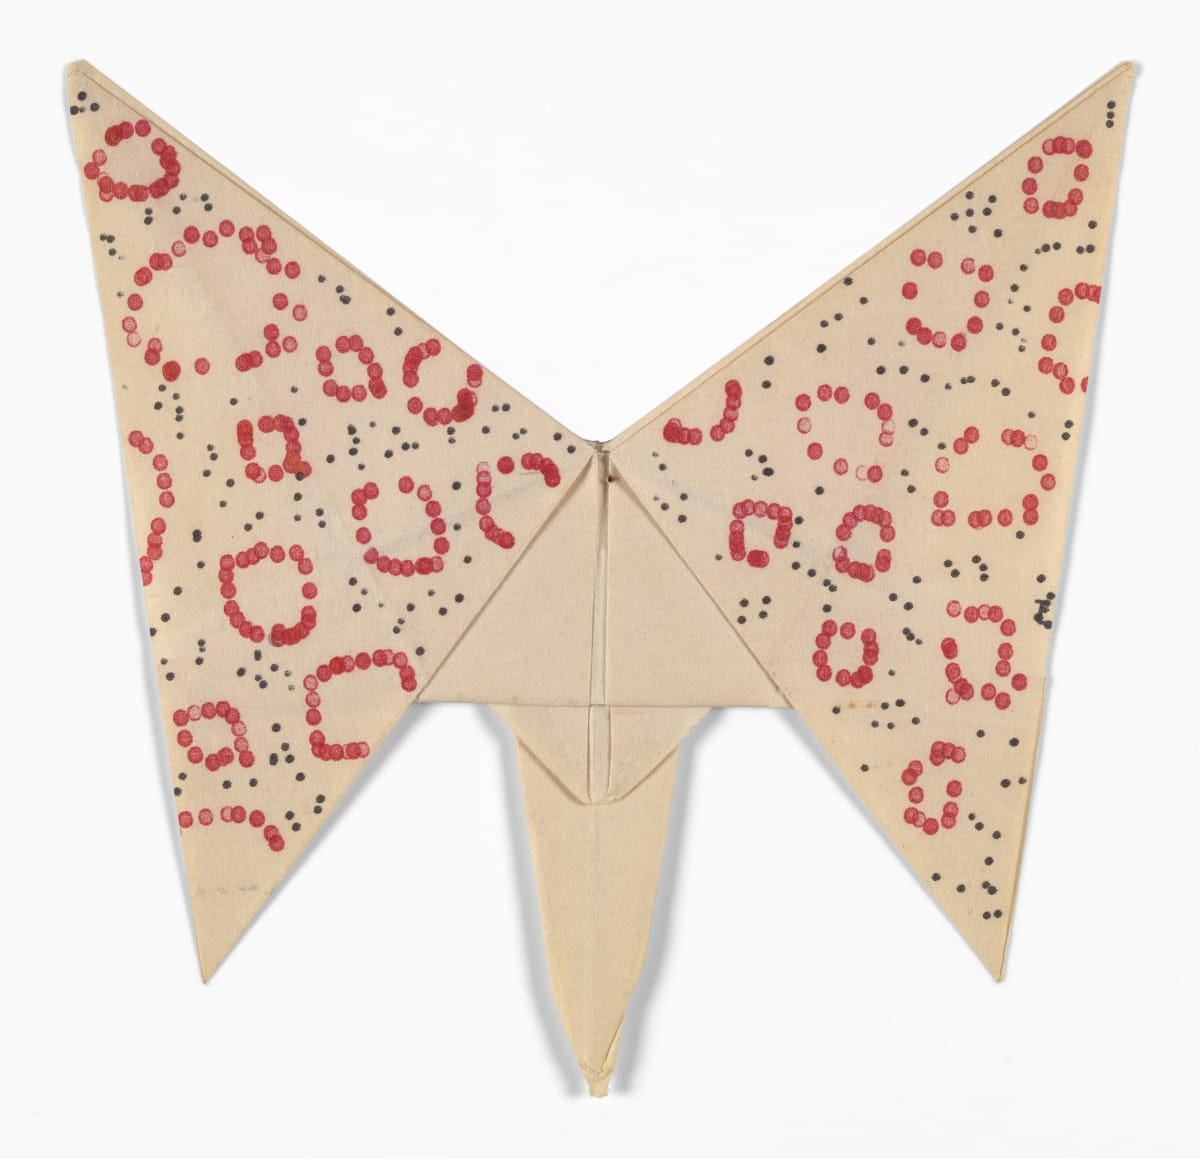 Dom Sylvester HOUEDARD Untitled [Butterfly with red o's], 1963 Paper (folded, unconventionally shaped, typed) 11.9 x 11.7 cm